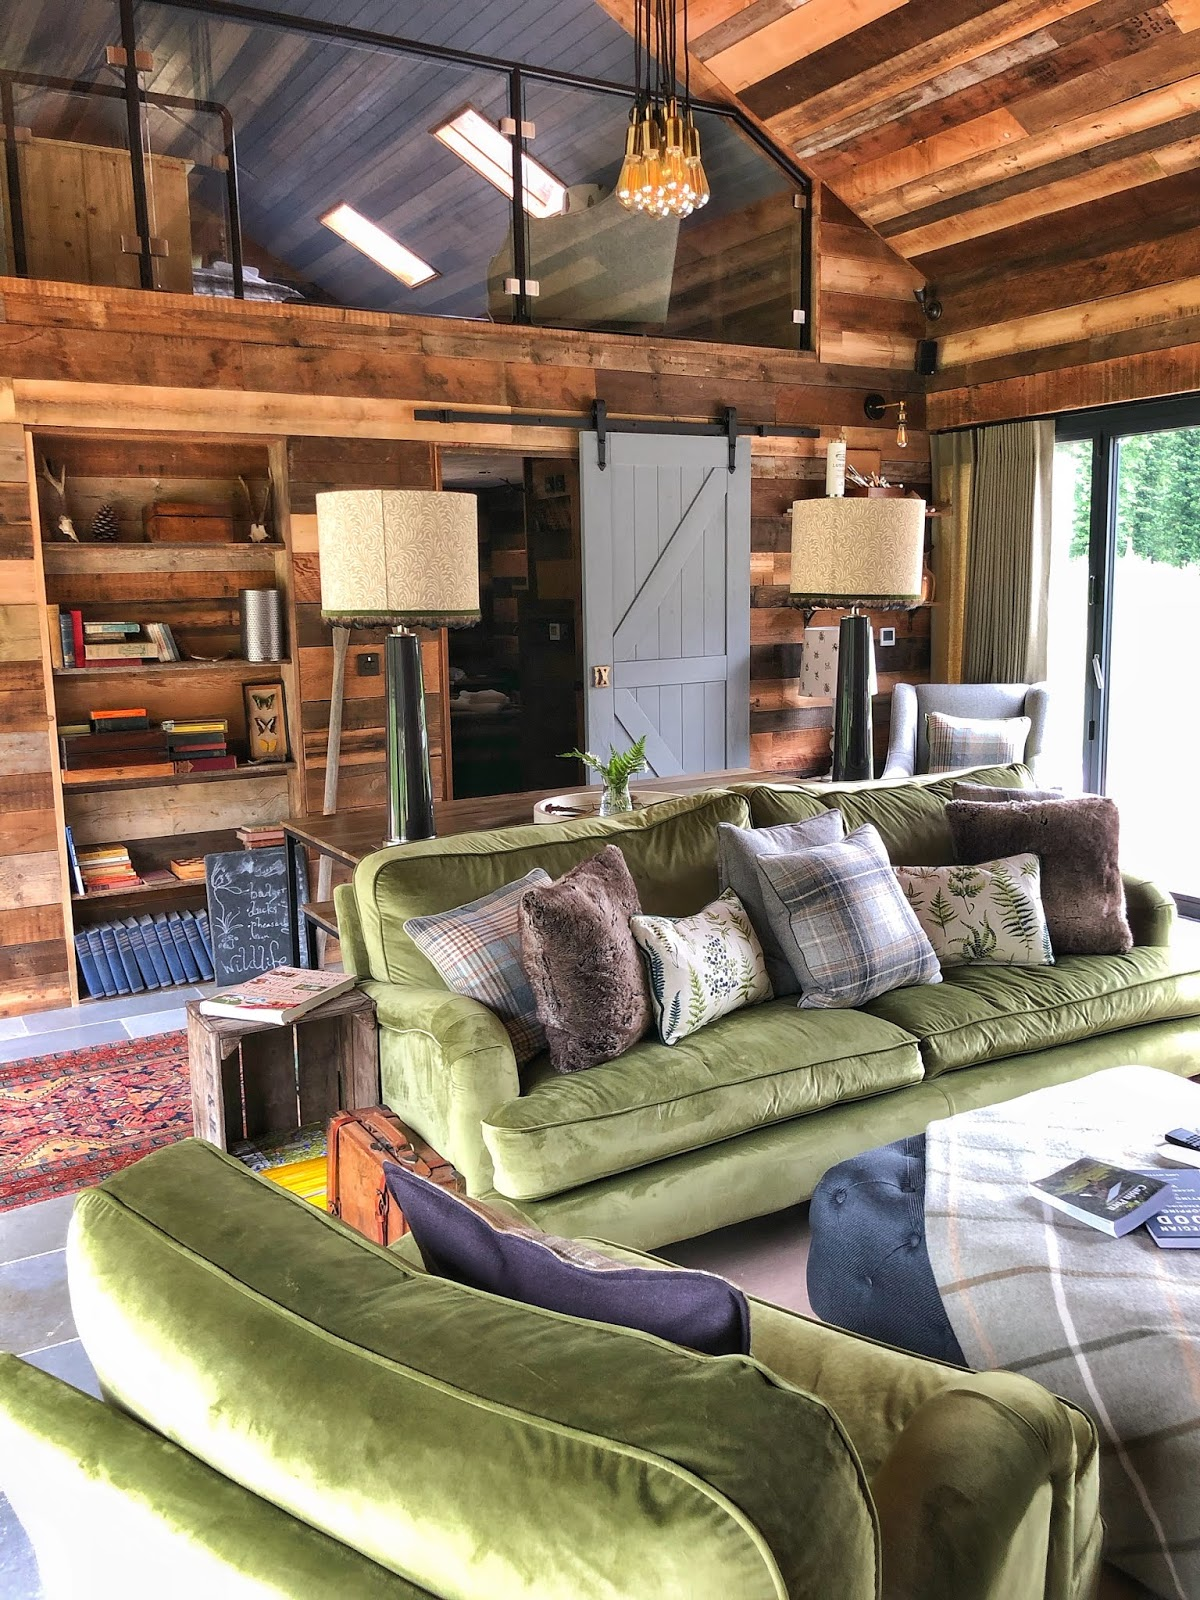 Two Nights In An Off Grid Cabin